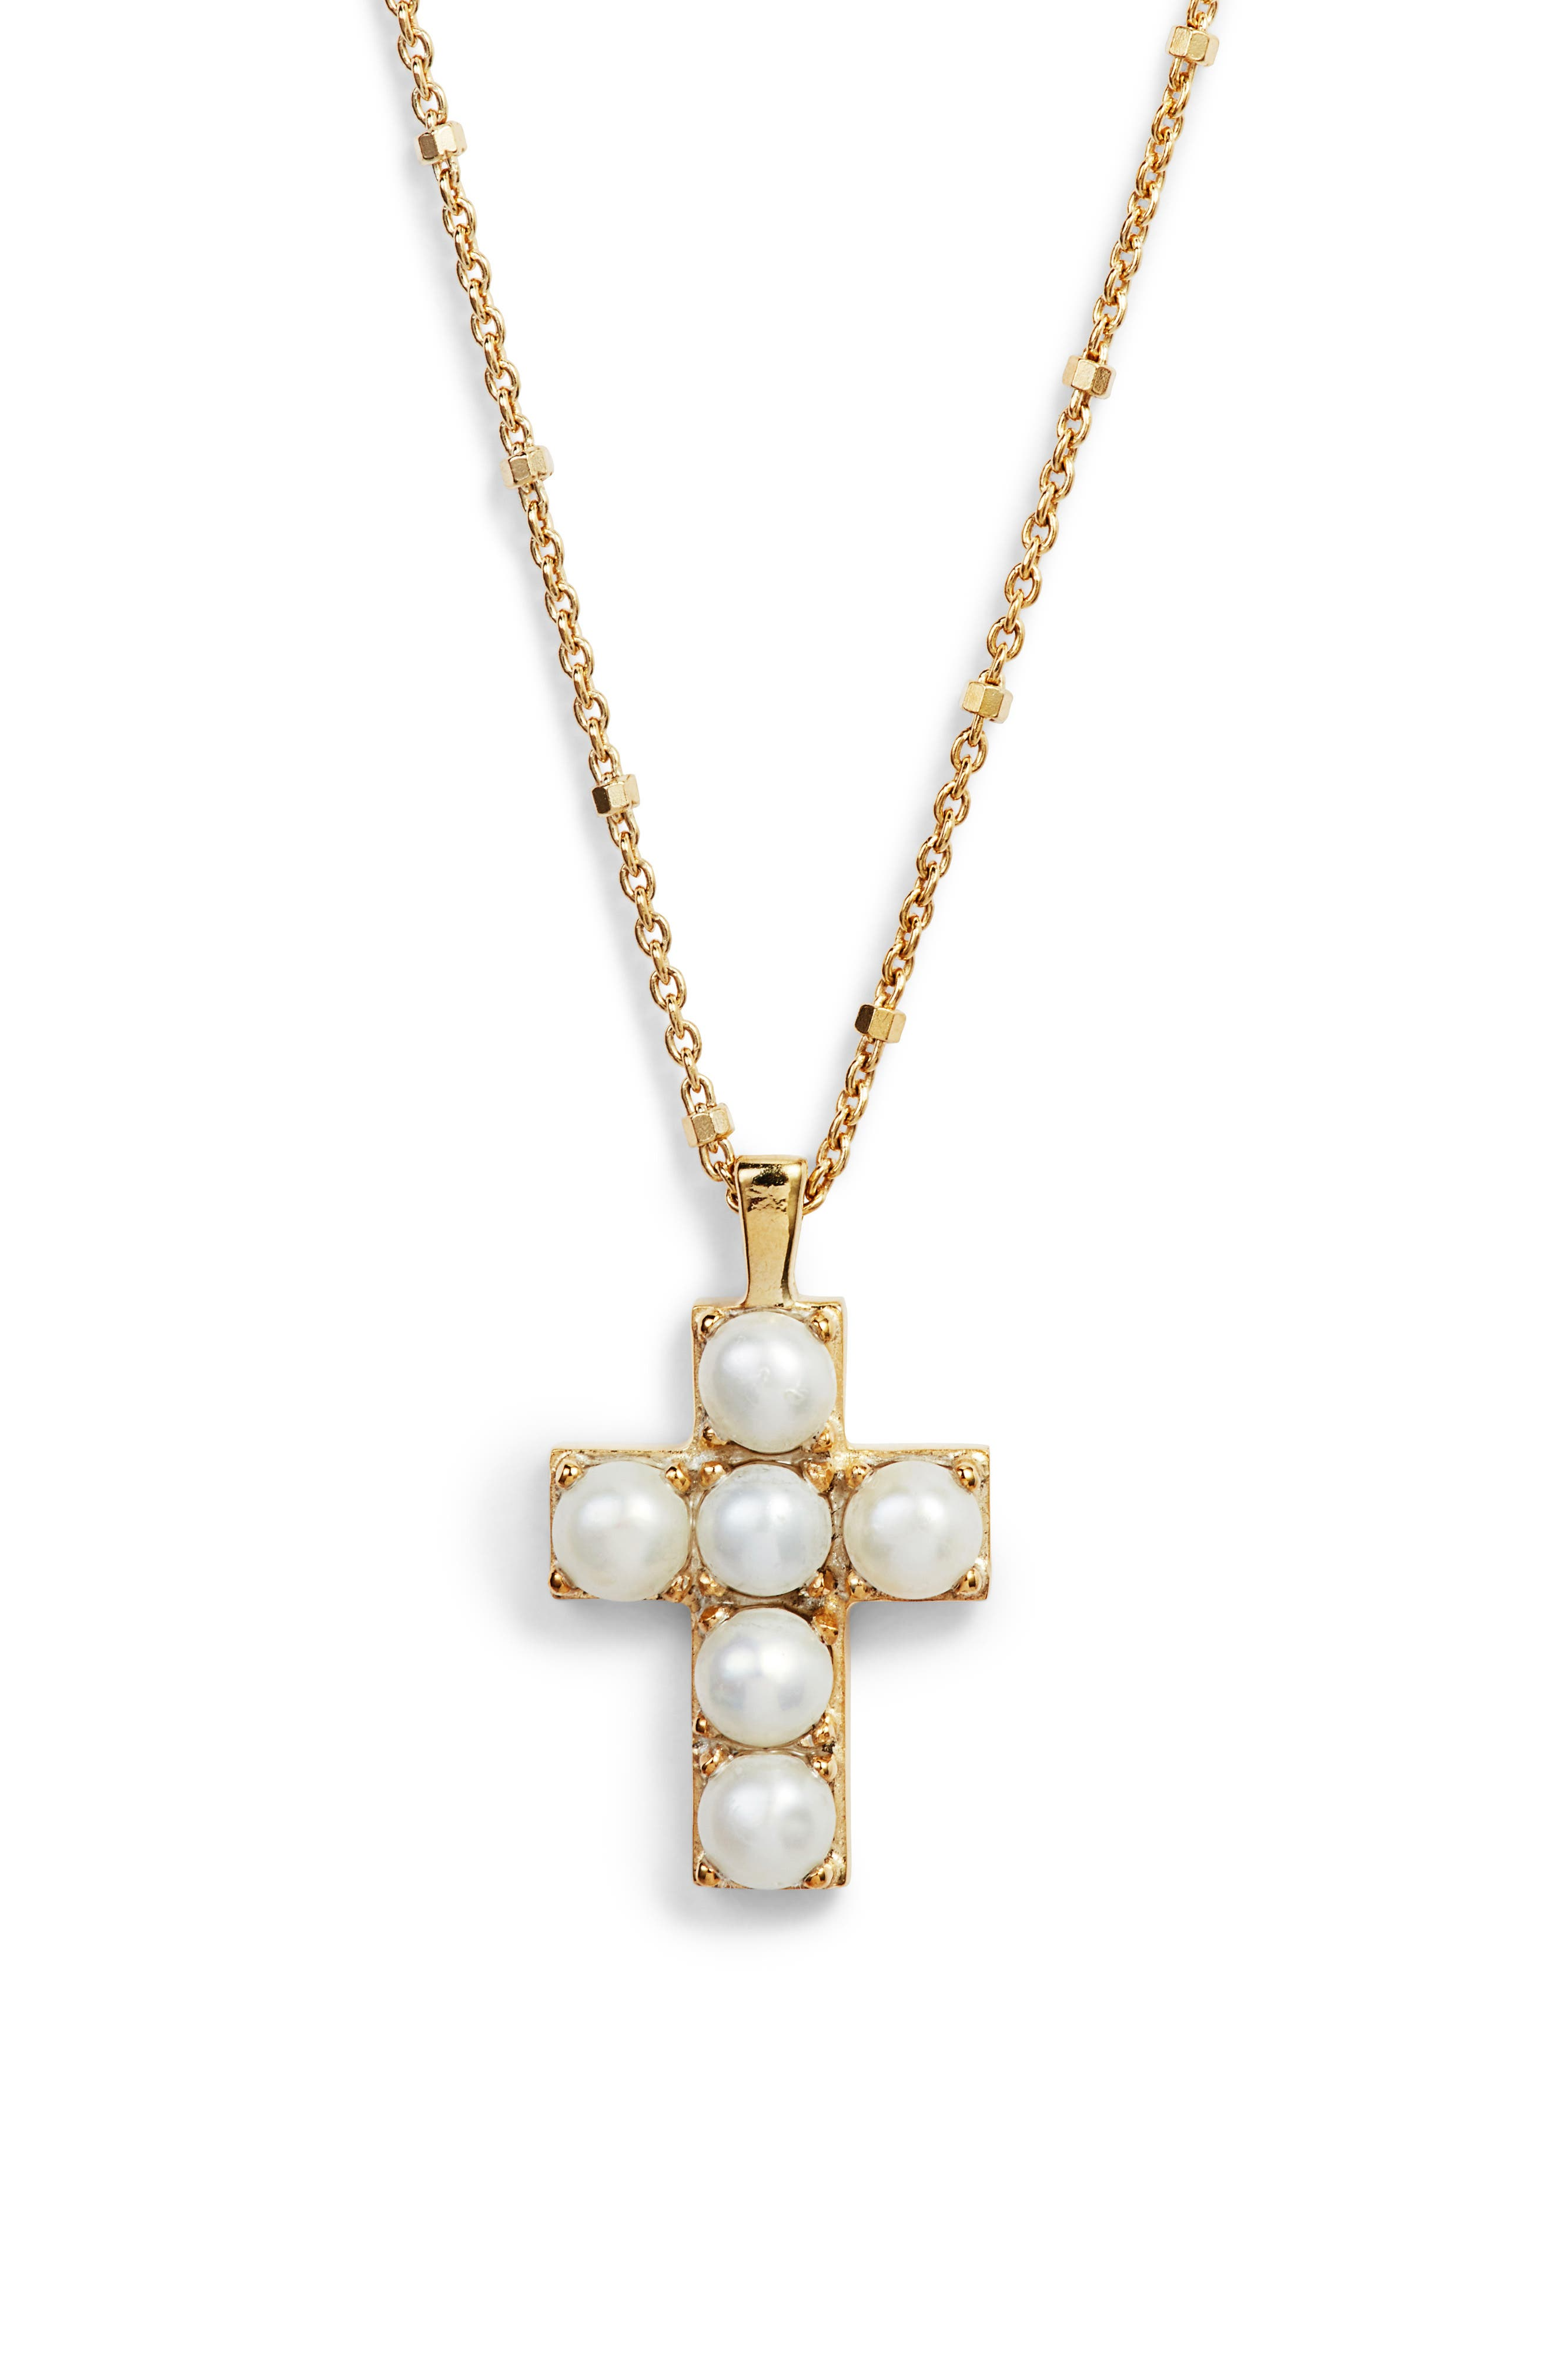 Cultured Pearl Cross Pendant Necklace,                             Main thumbnail 1, color,                             PEARL/ GOLD